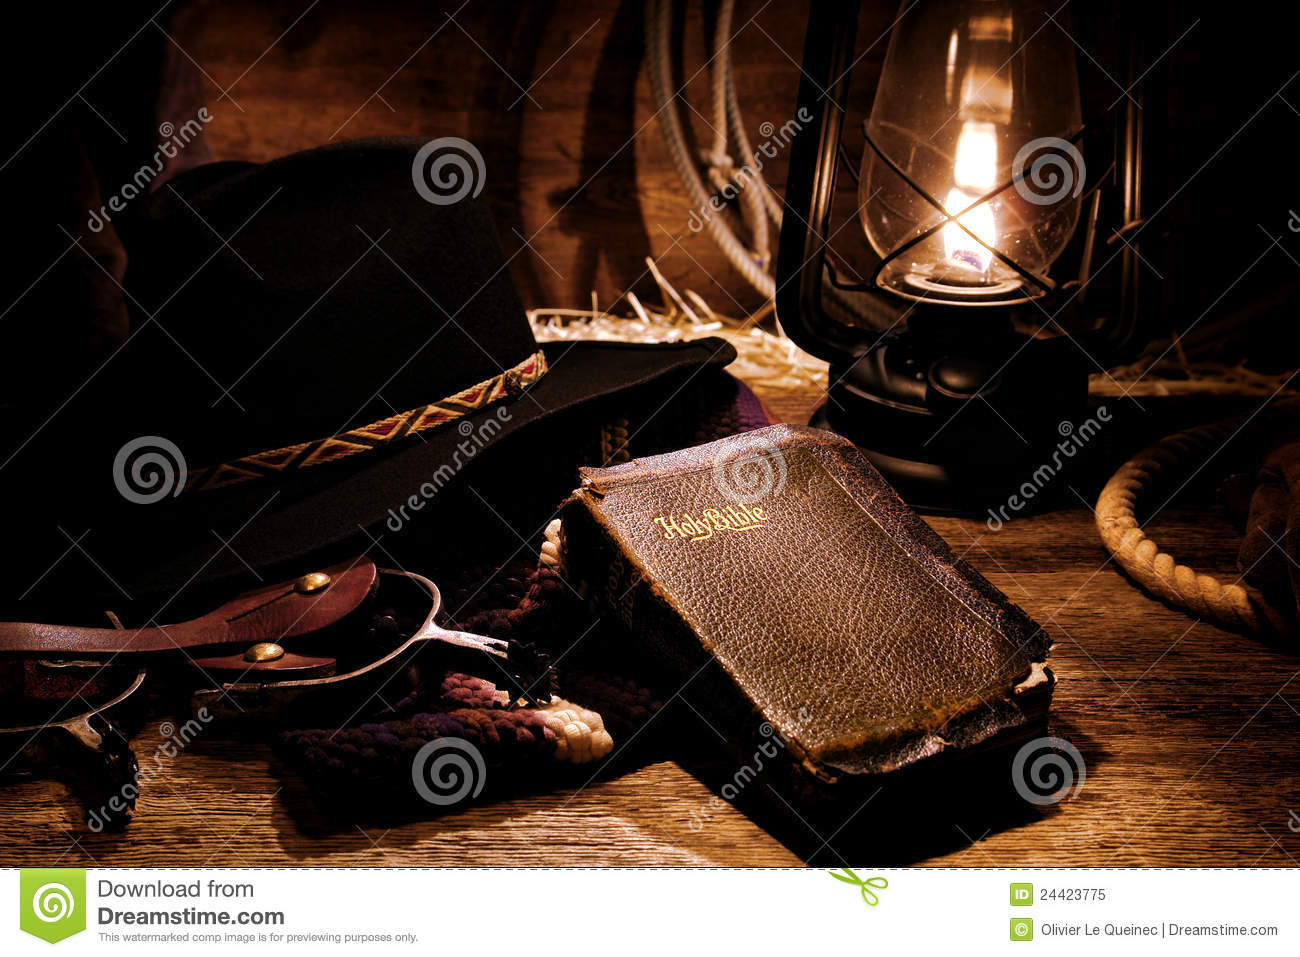 Lit Quotes Wallpaper American West Rodeo Cowboy Gear And Old Holy Bible Royalty